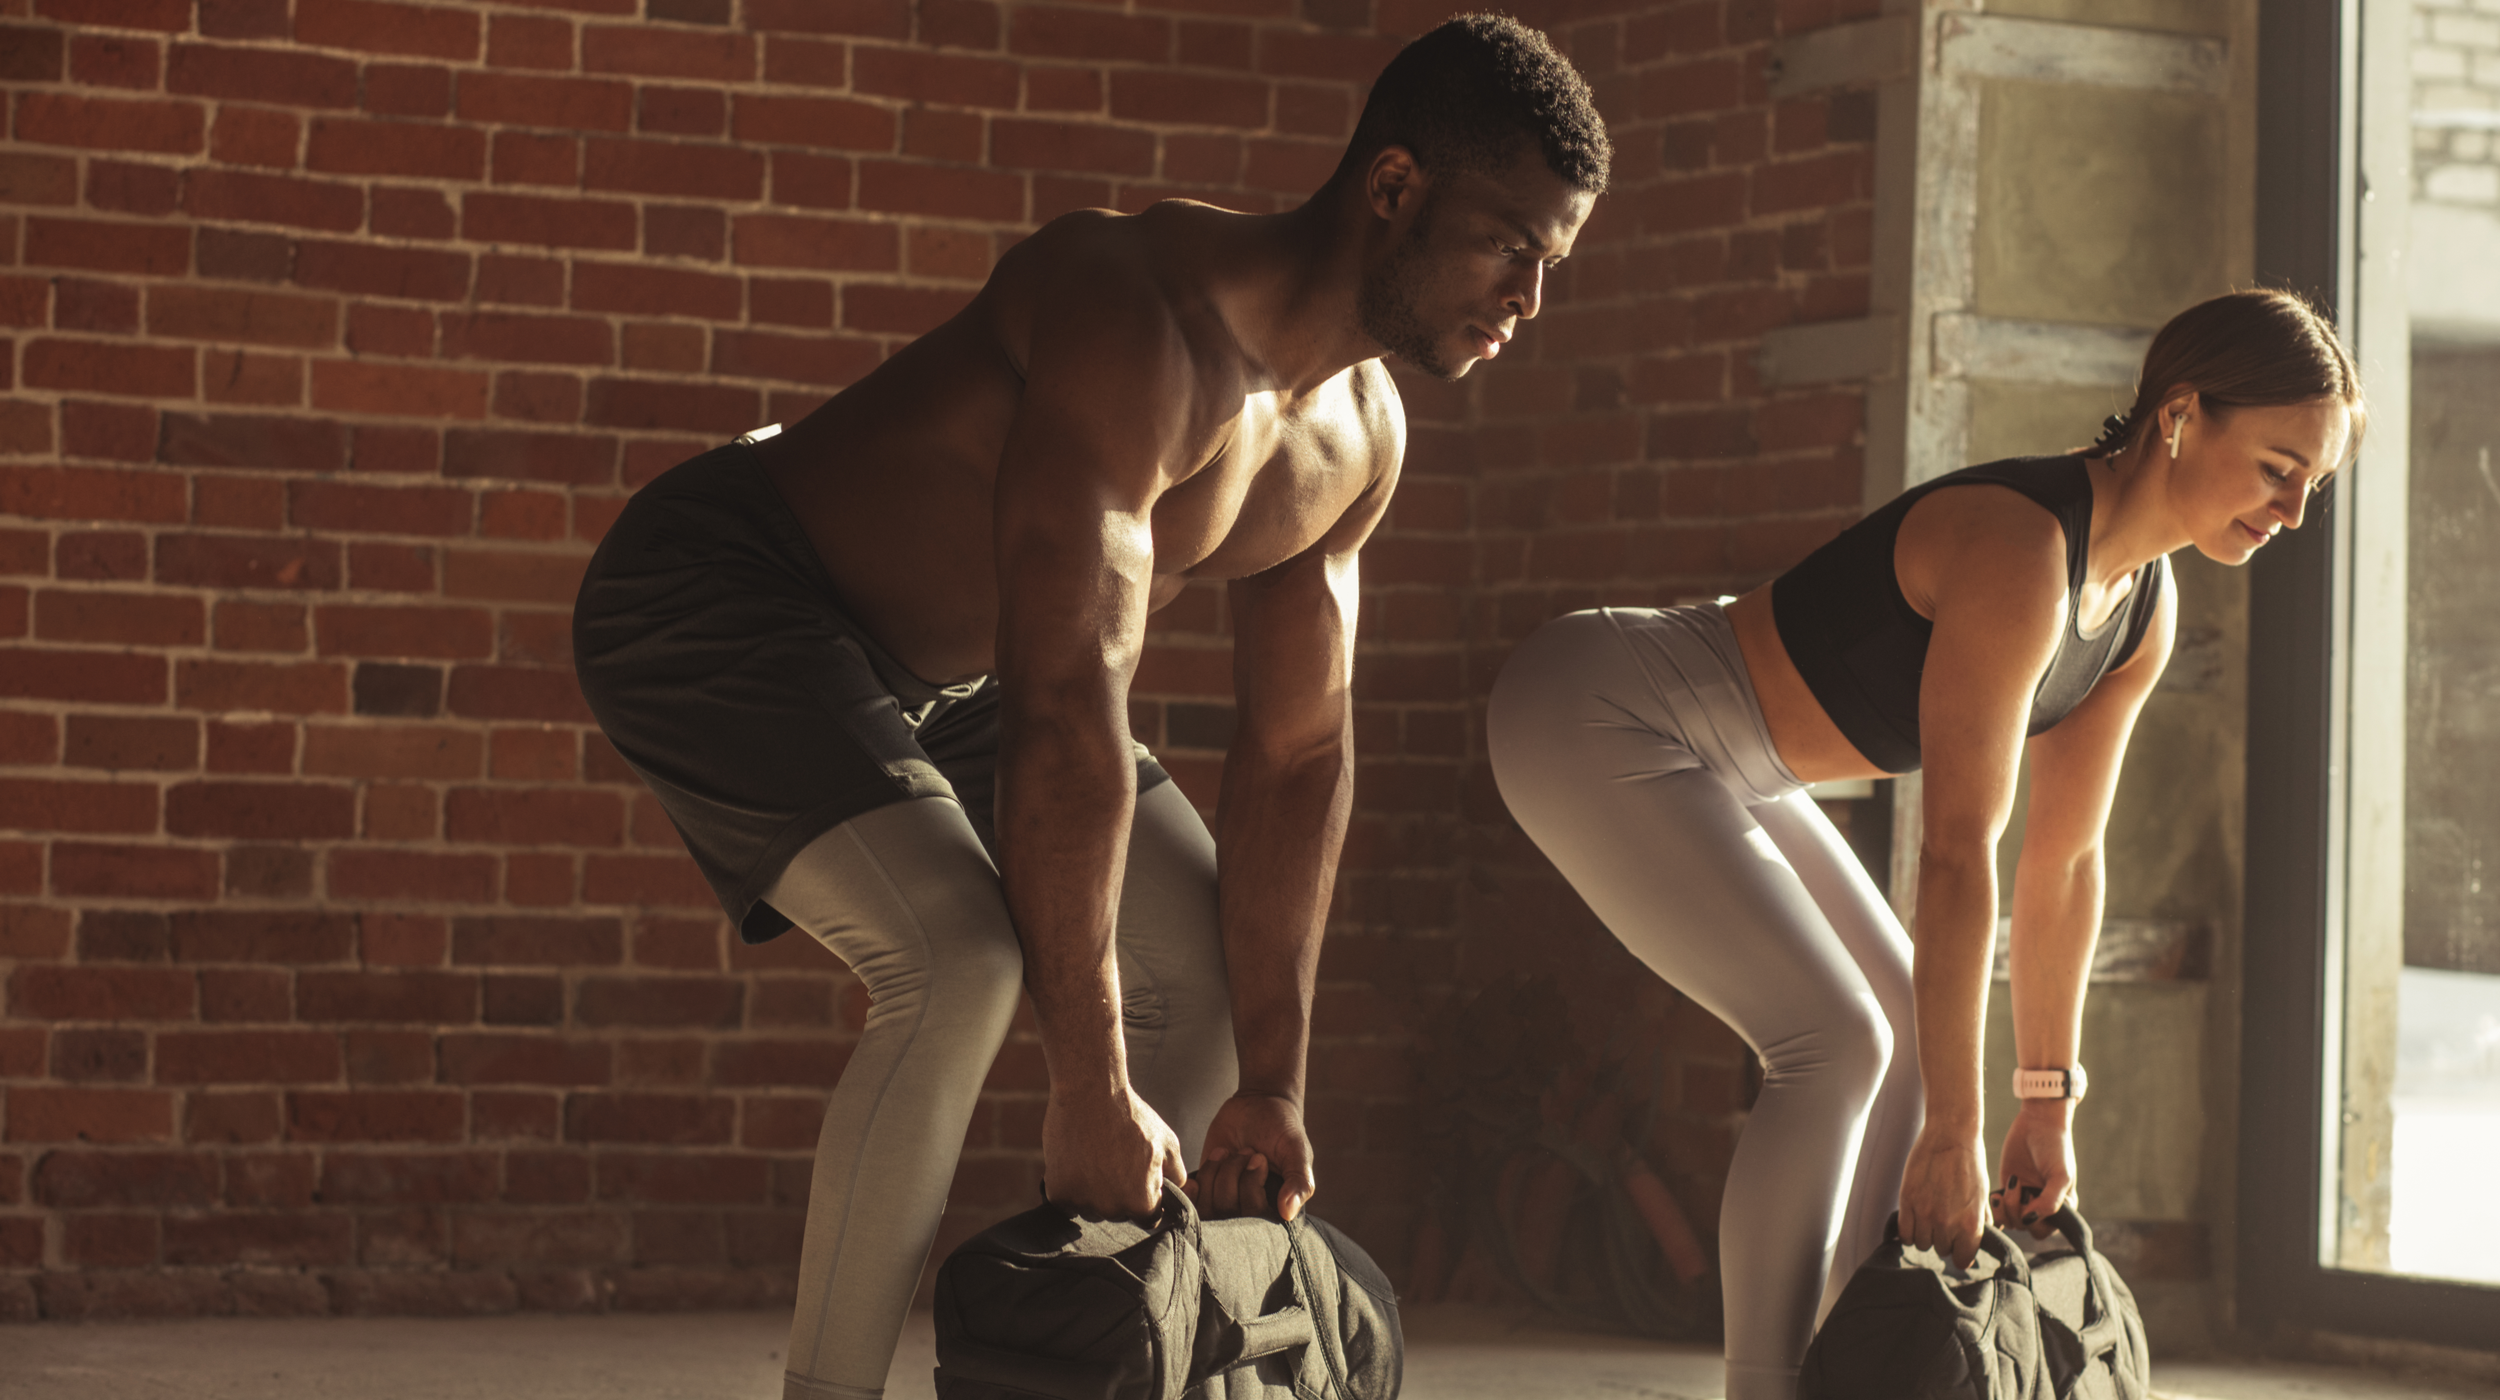 Unconventional Weight Training Exercises that can Help you Pack on Muscle